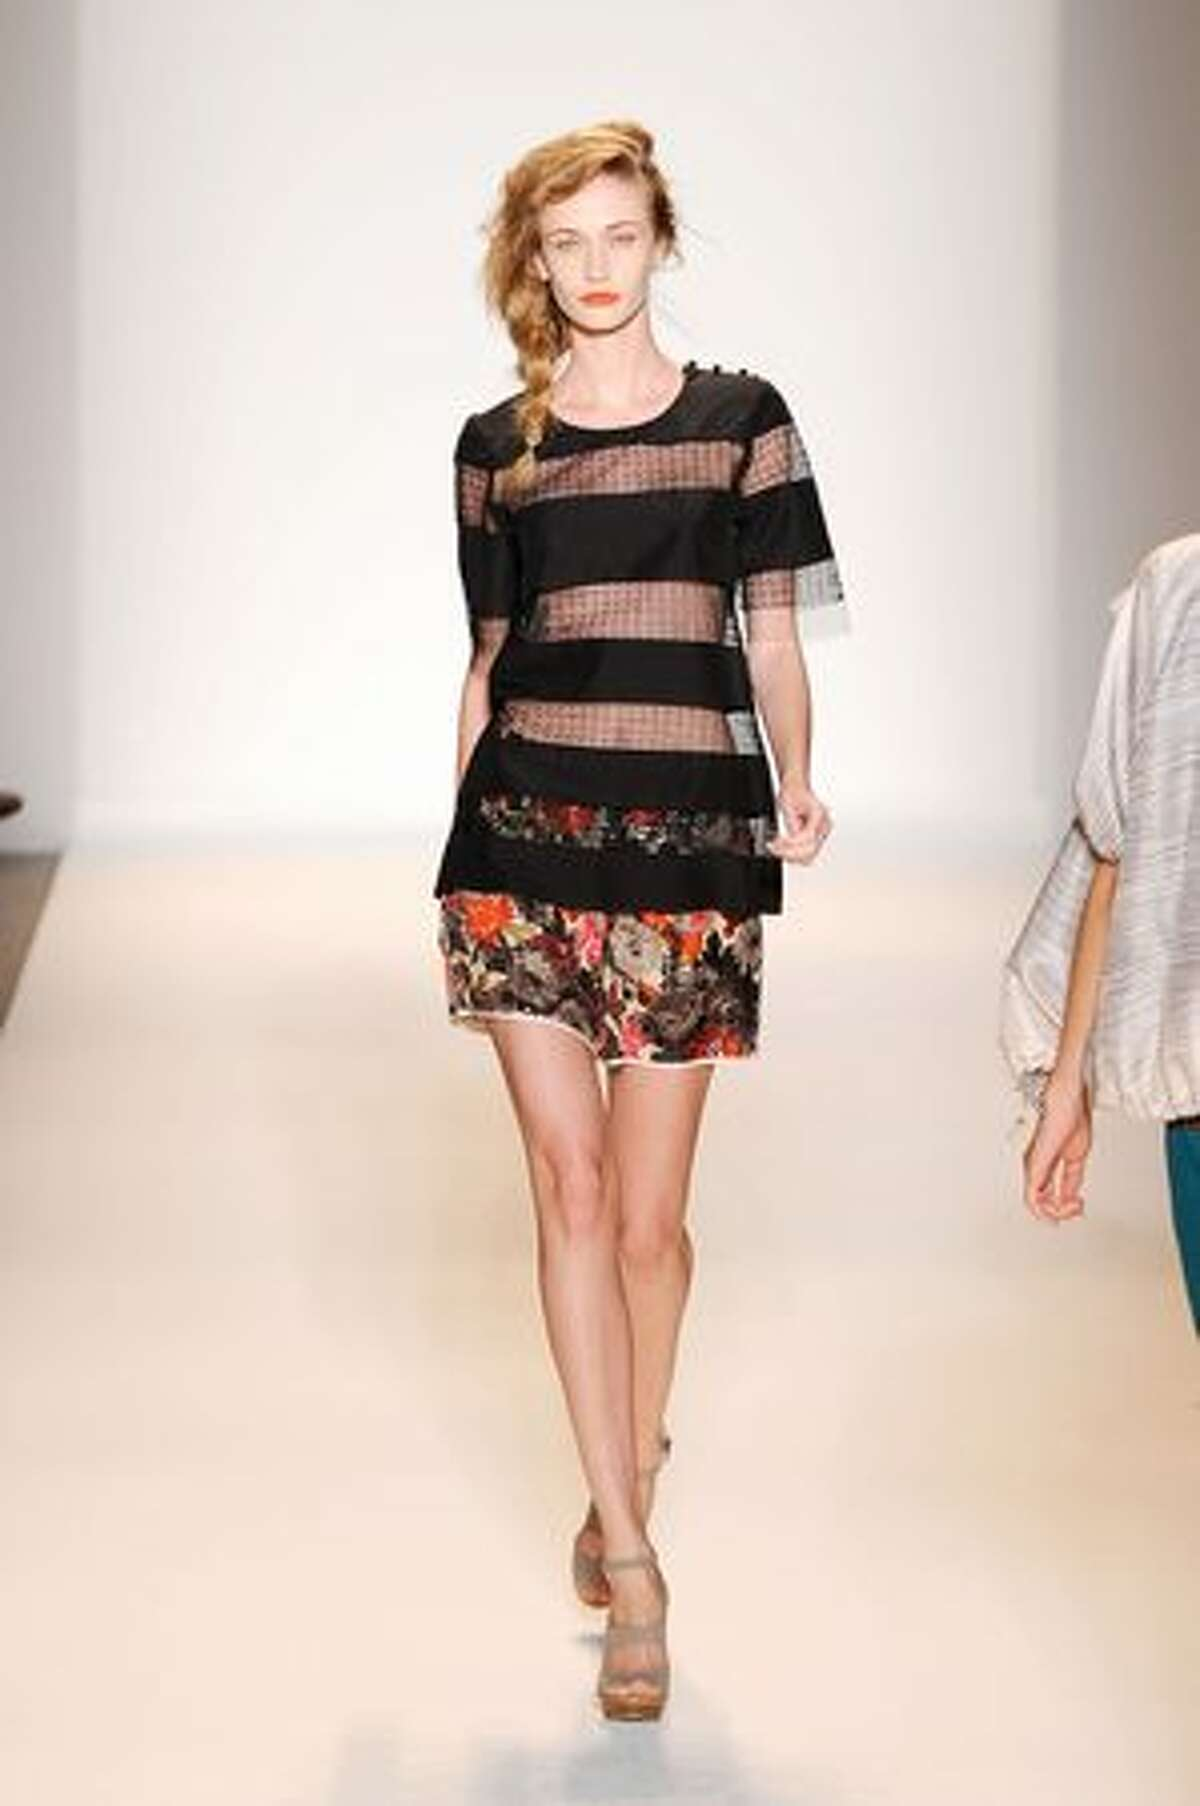 A model walks the runway at the Lela Rose spring 2011 fashion show.